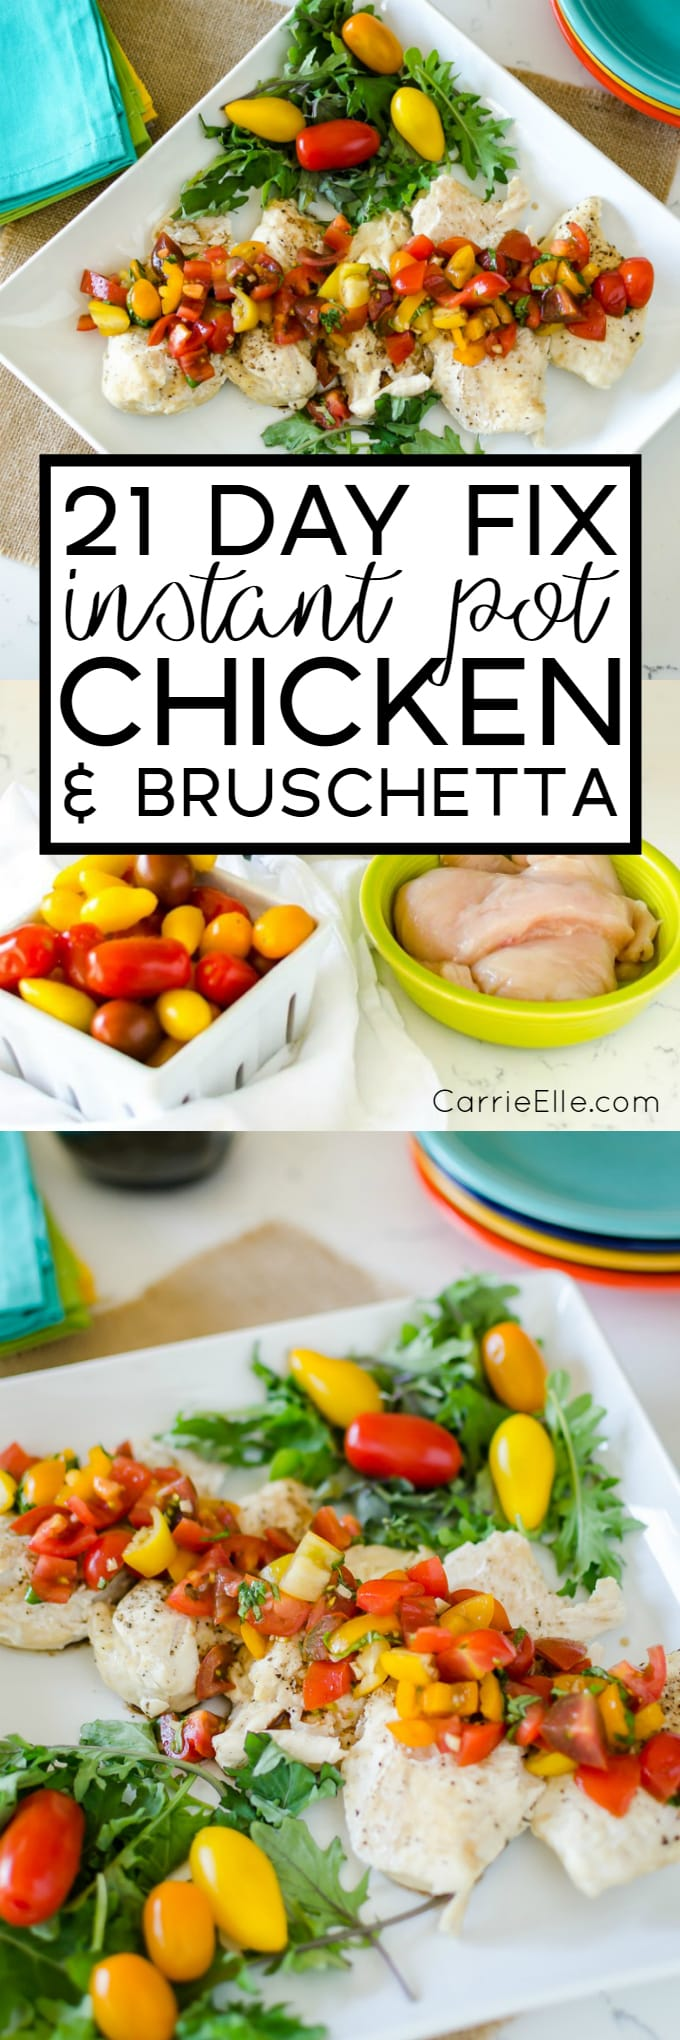 21 Day Fix Instant Pot Chicken Bruschetta